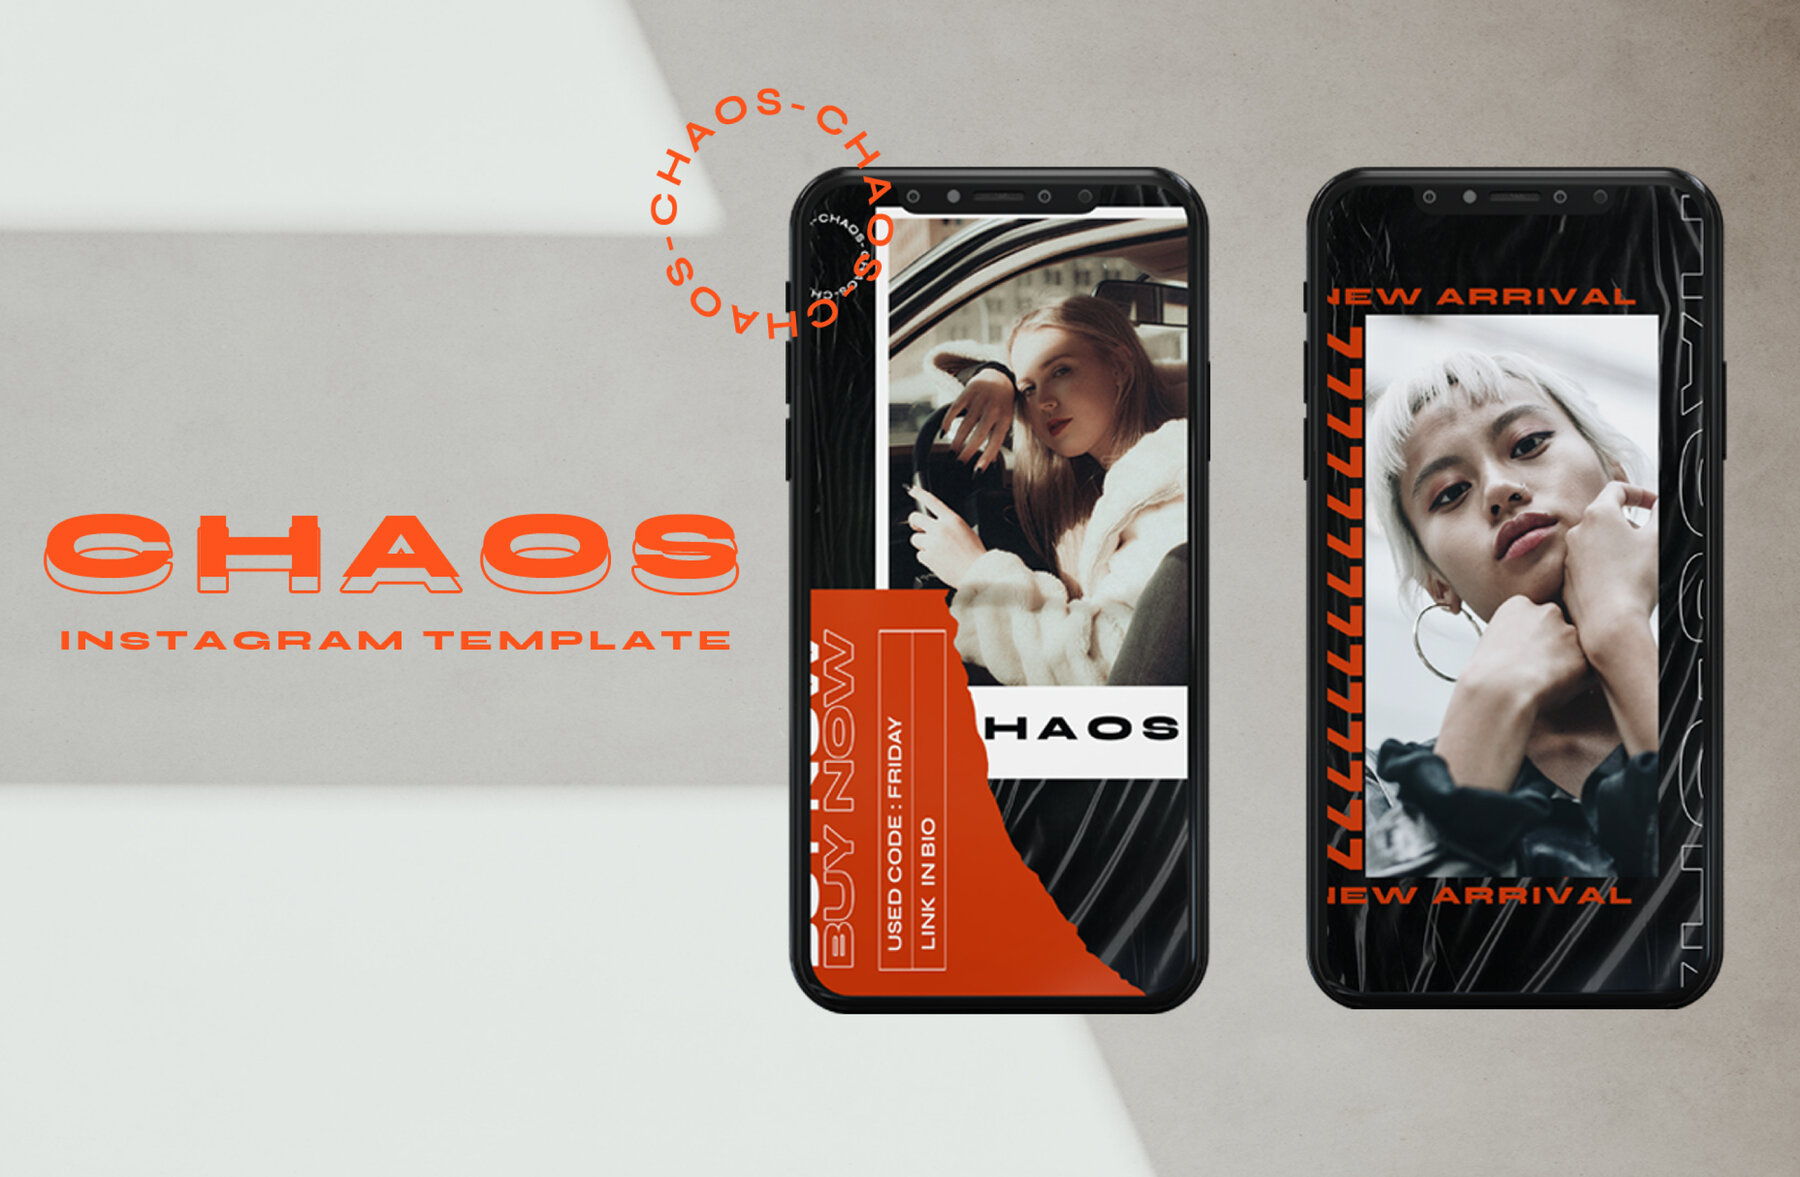 Chaos Instagram Template